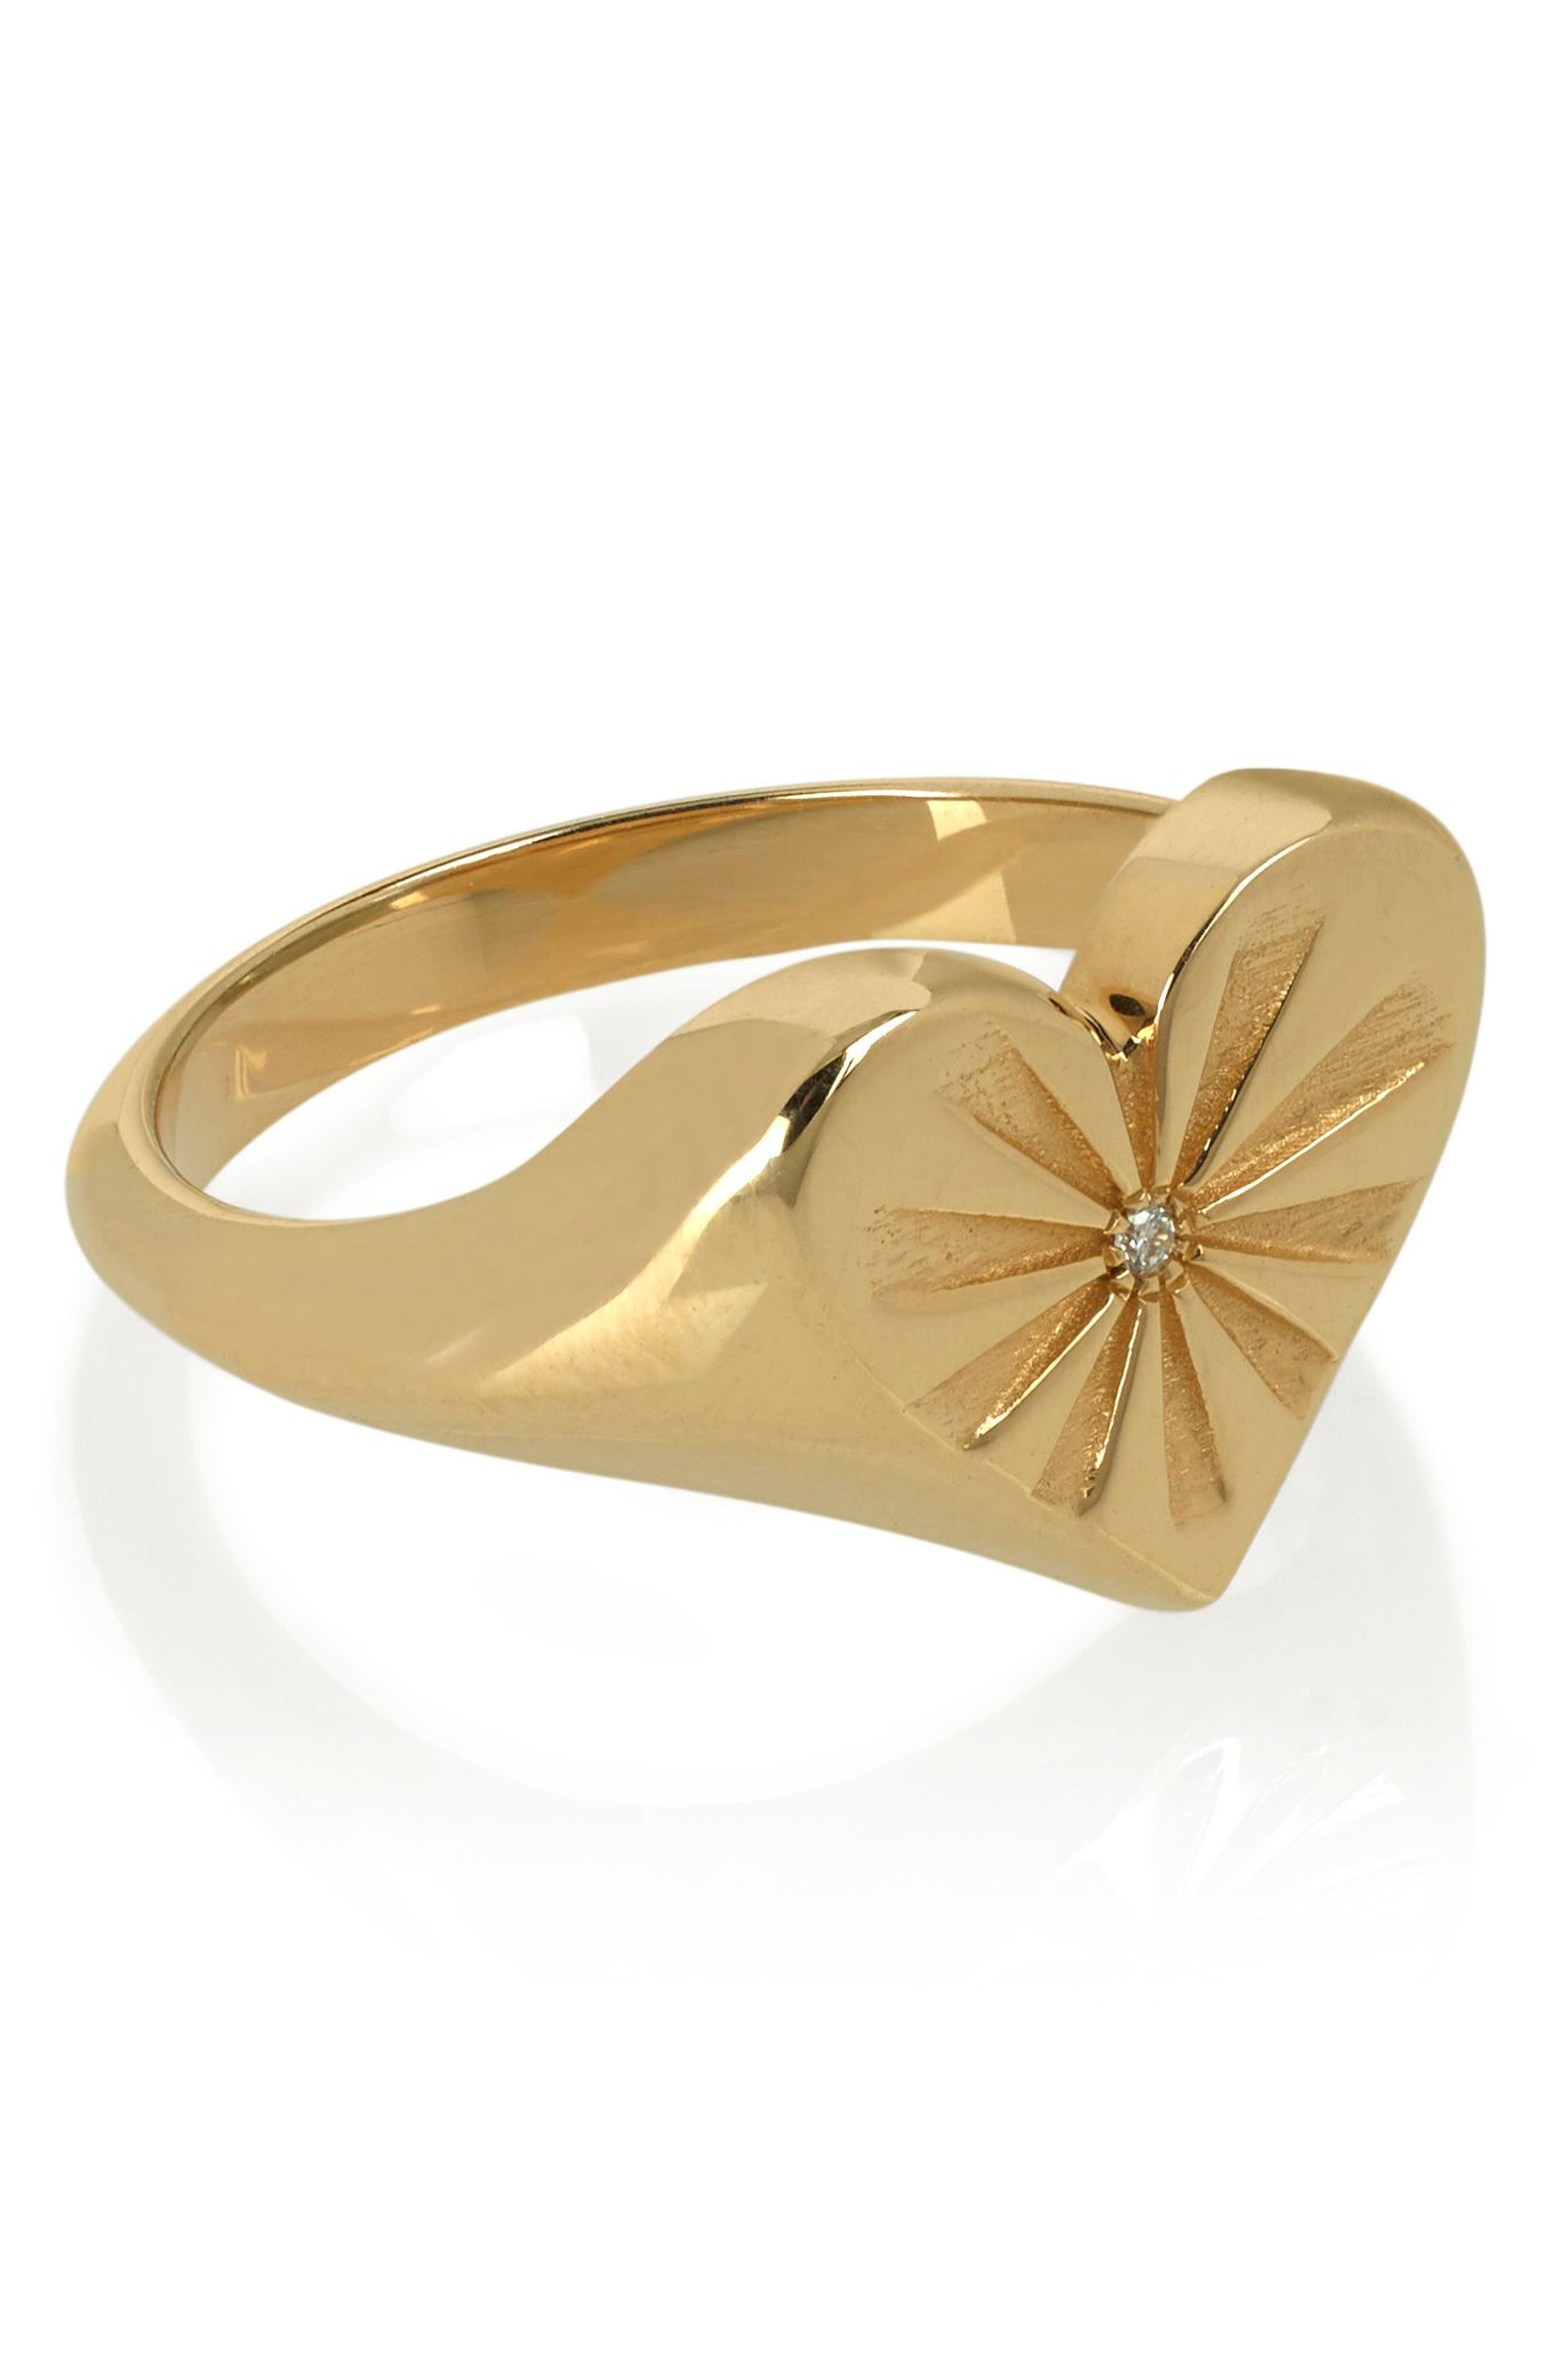 Heart Pinky Ring,                             Alternate thumbnail 3, color,                             YELLOW GOLD